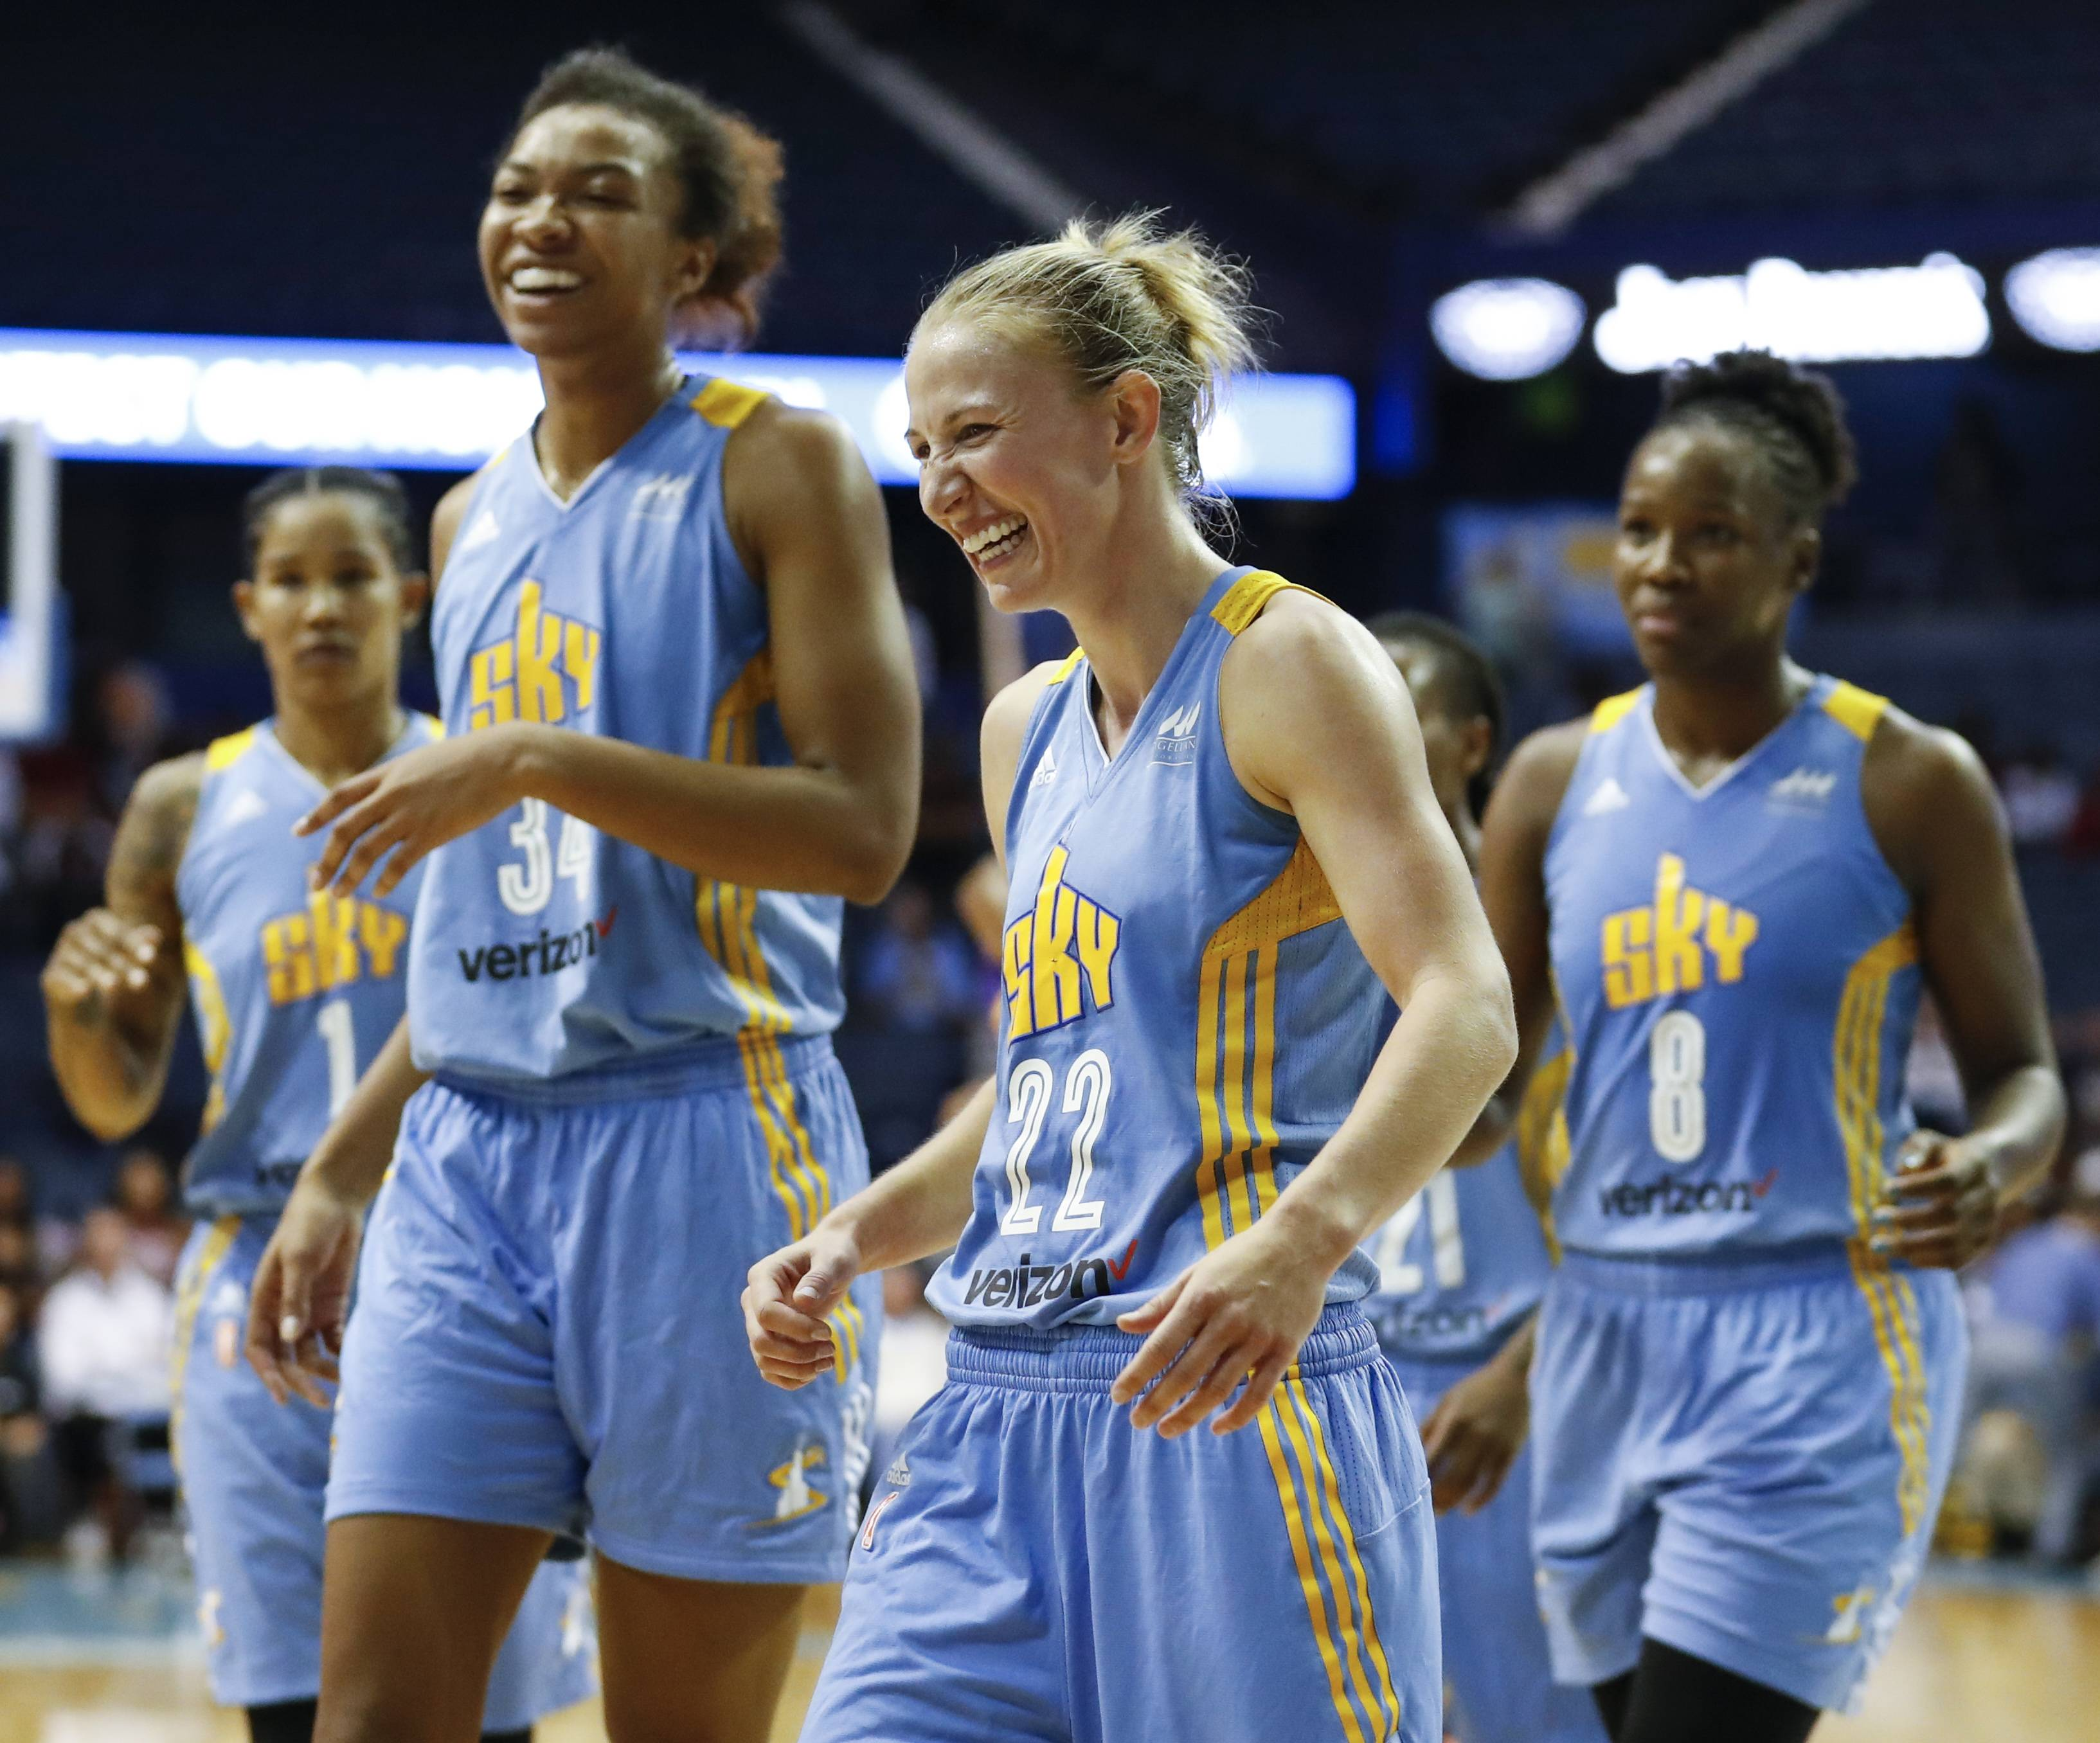 The Chicago Sky are leaving the suburbs for a new home back in the city, and while some fans say they'll follow the team anywhere, other are anything but thrilled.